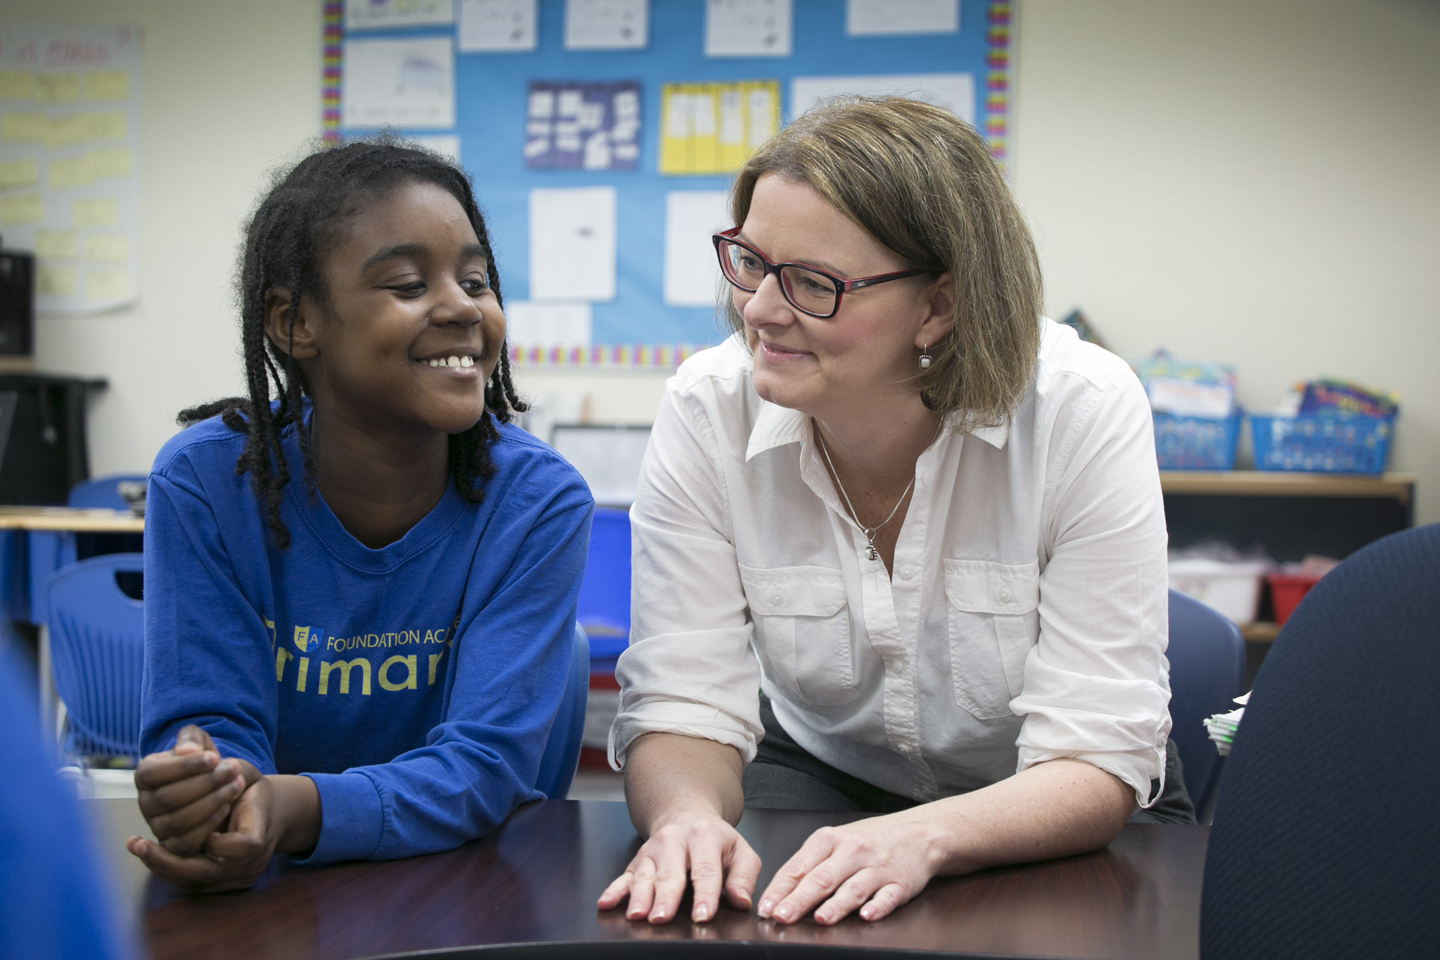 The photo shows a guidance counselor enjoying a happy moment with a primary school student.